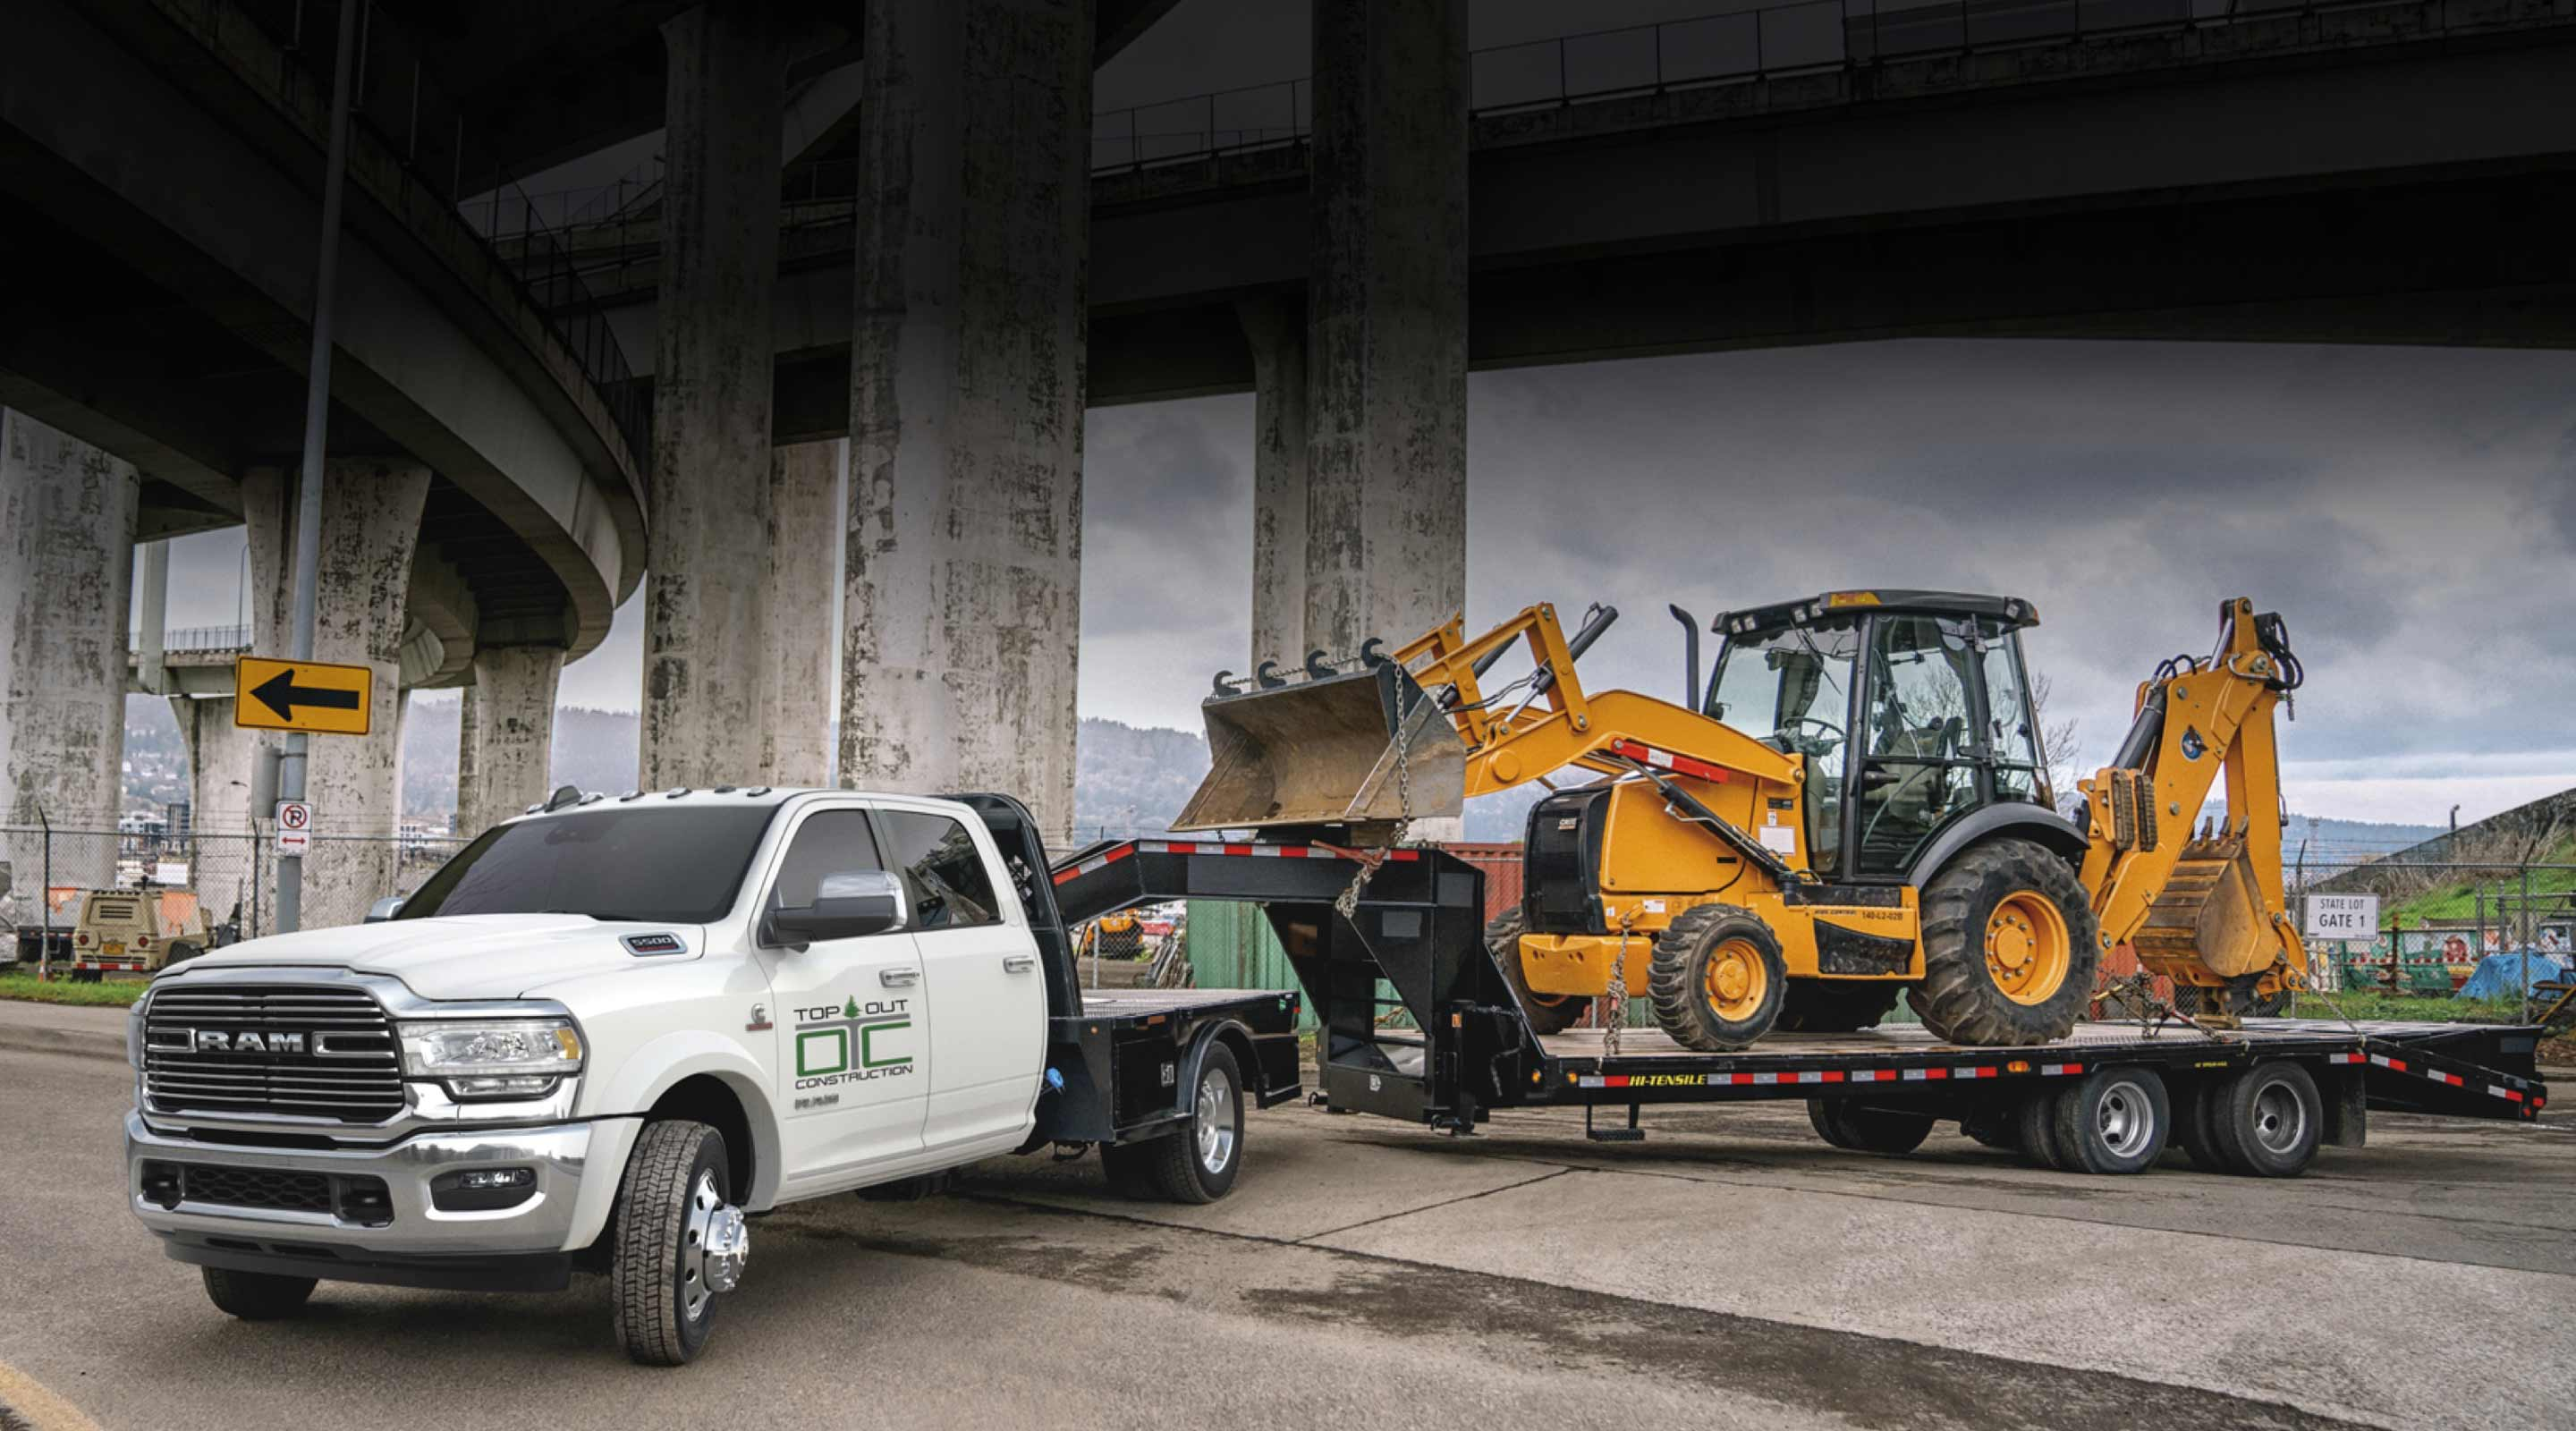 A 2020 Ram Chassis Cab towing a backhoe on a flatbed trailer.